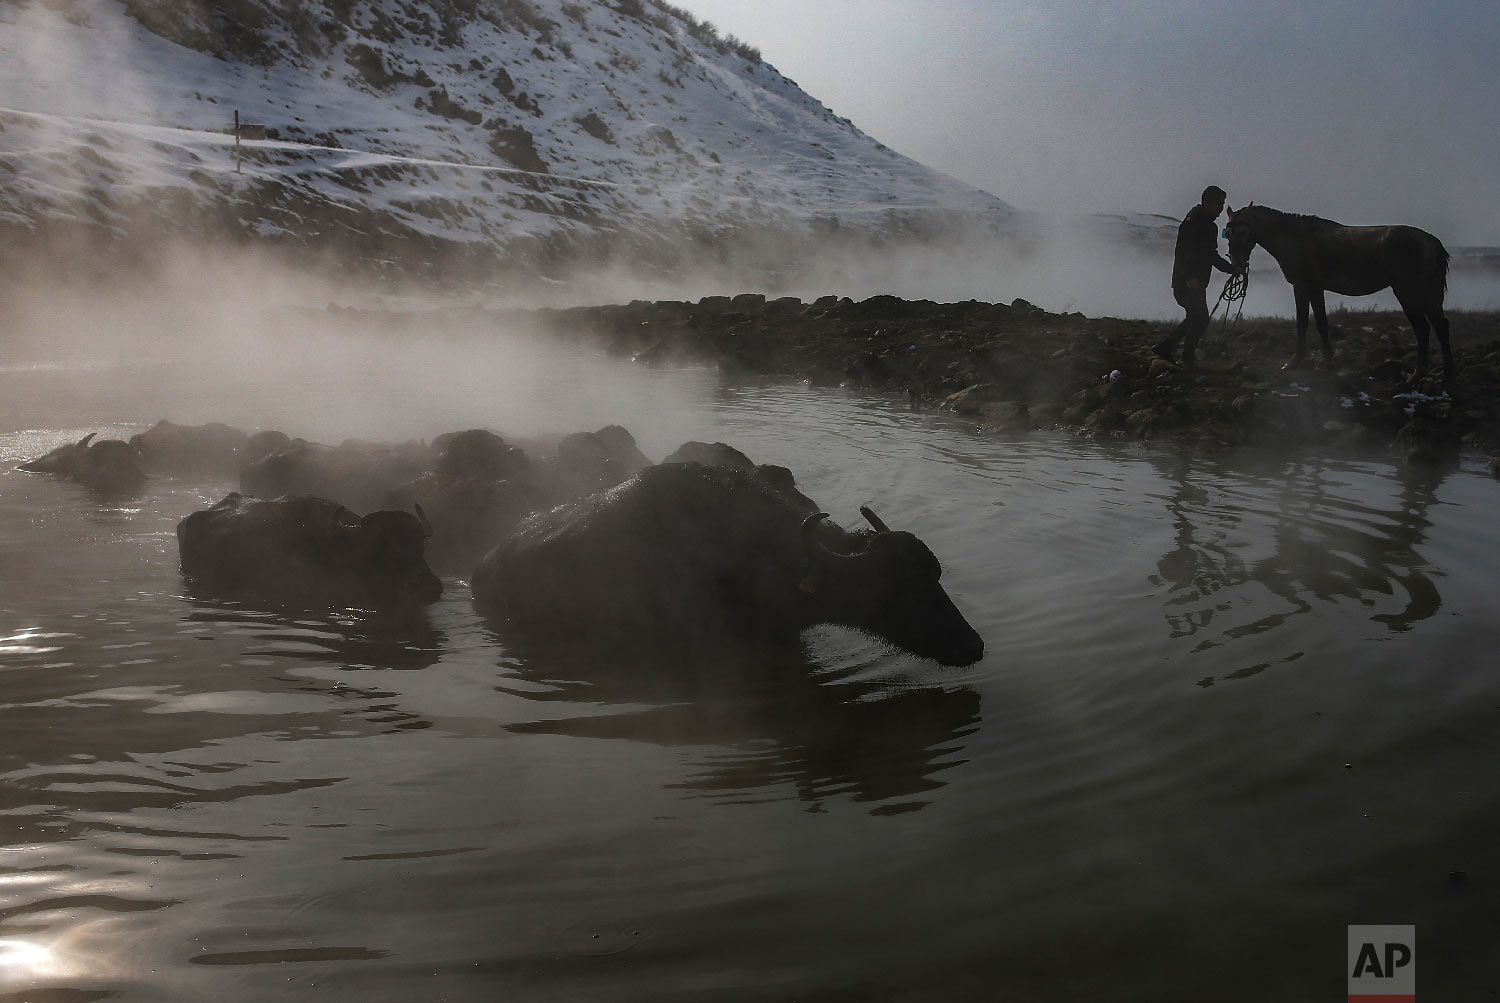 Water buffaloes bathe in a hot spring near the village of Budakli, in the mountainous Bitlis province of eastern Turkey, Thursday, Jan. 24, 2019. (AP Photo/Emrah Gurel)